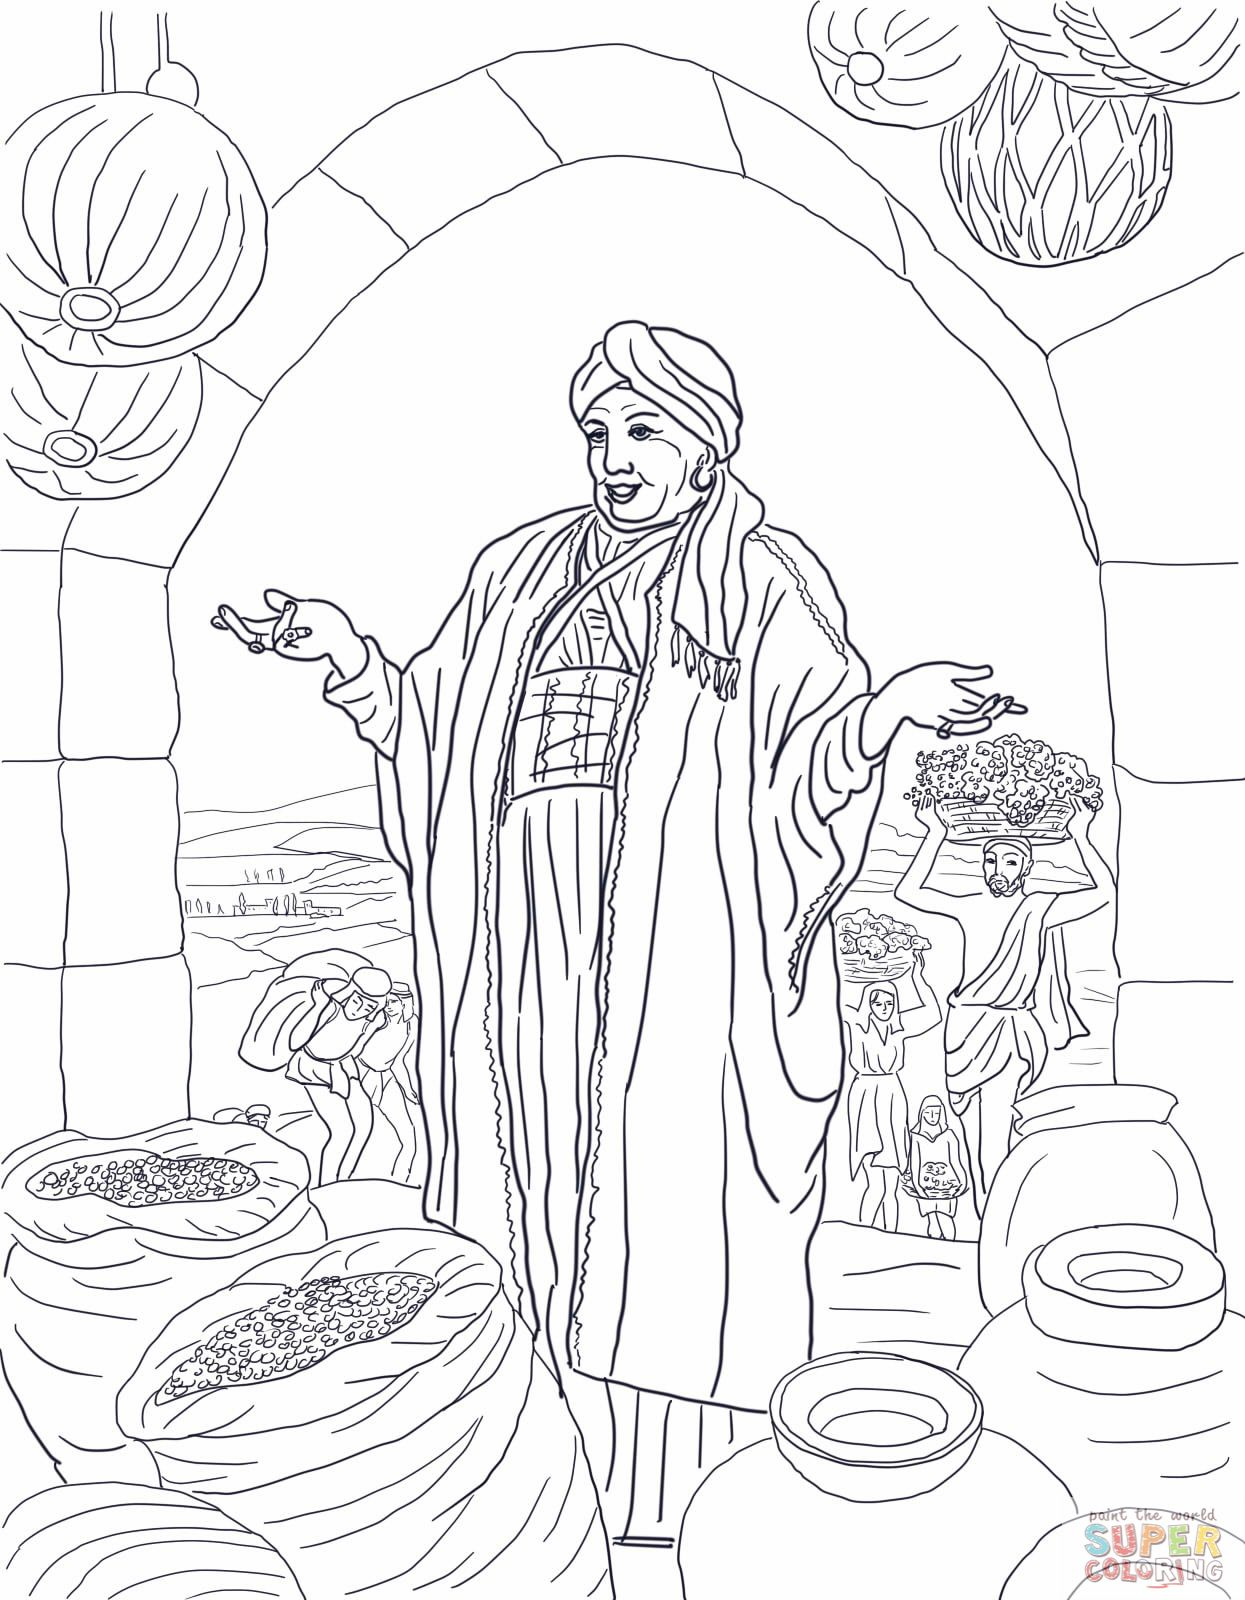 Parable Of The Rich Fool Coloring Page Jpg 1245 1600 Bible